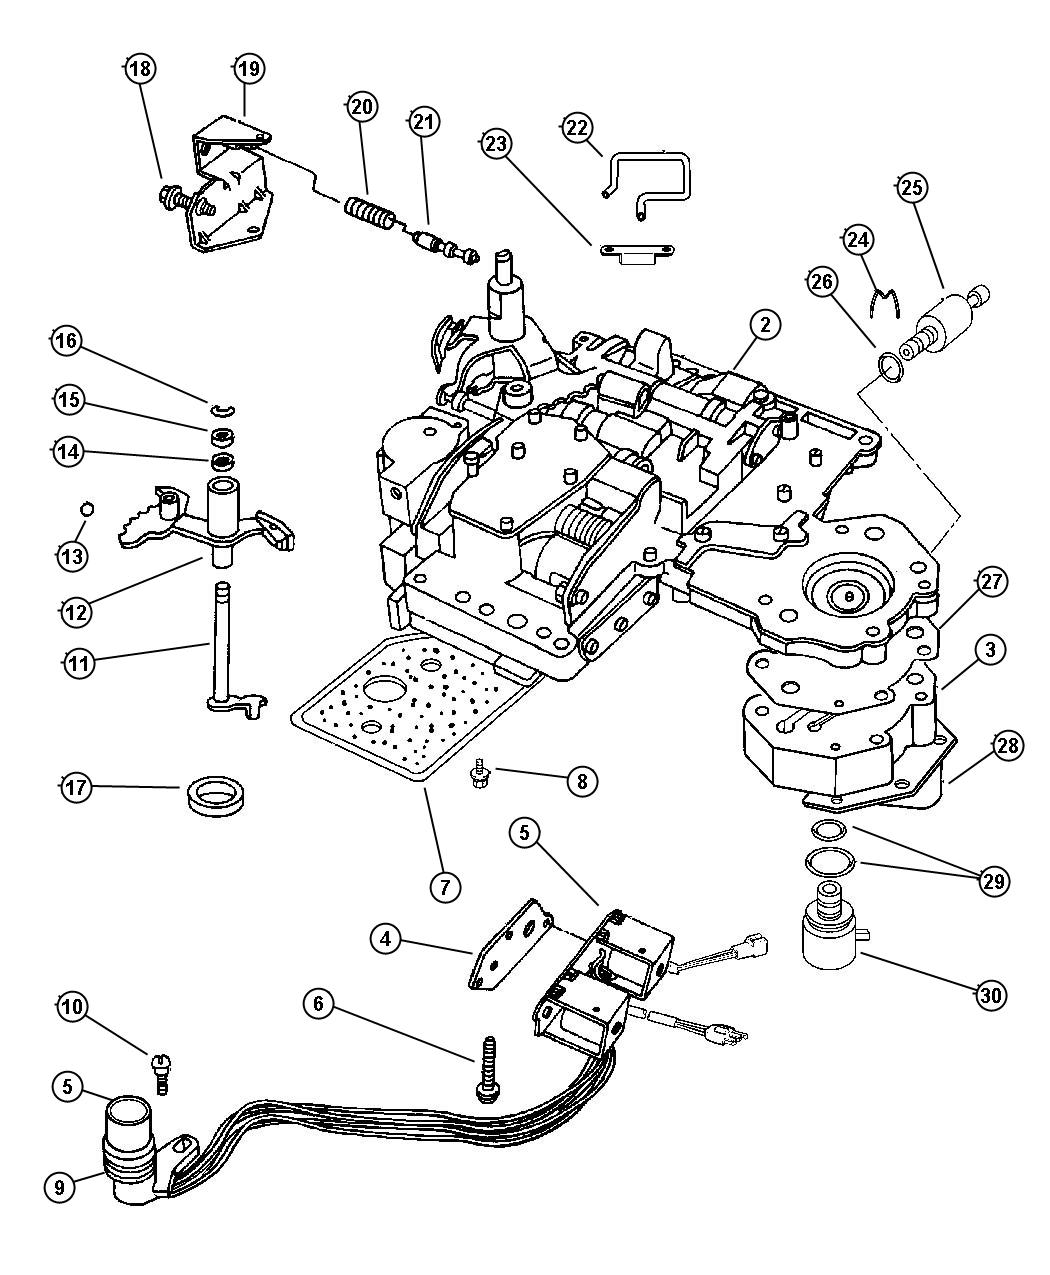 2000 Dodge Dakota Fog Light Wiring Diagram Library 98 Ram 1500 Radio Wire Tcc Another Blog About U2022 Rh Ok2 Infoservice Ru 2002 1998